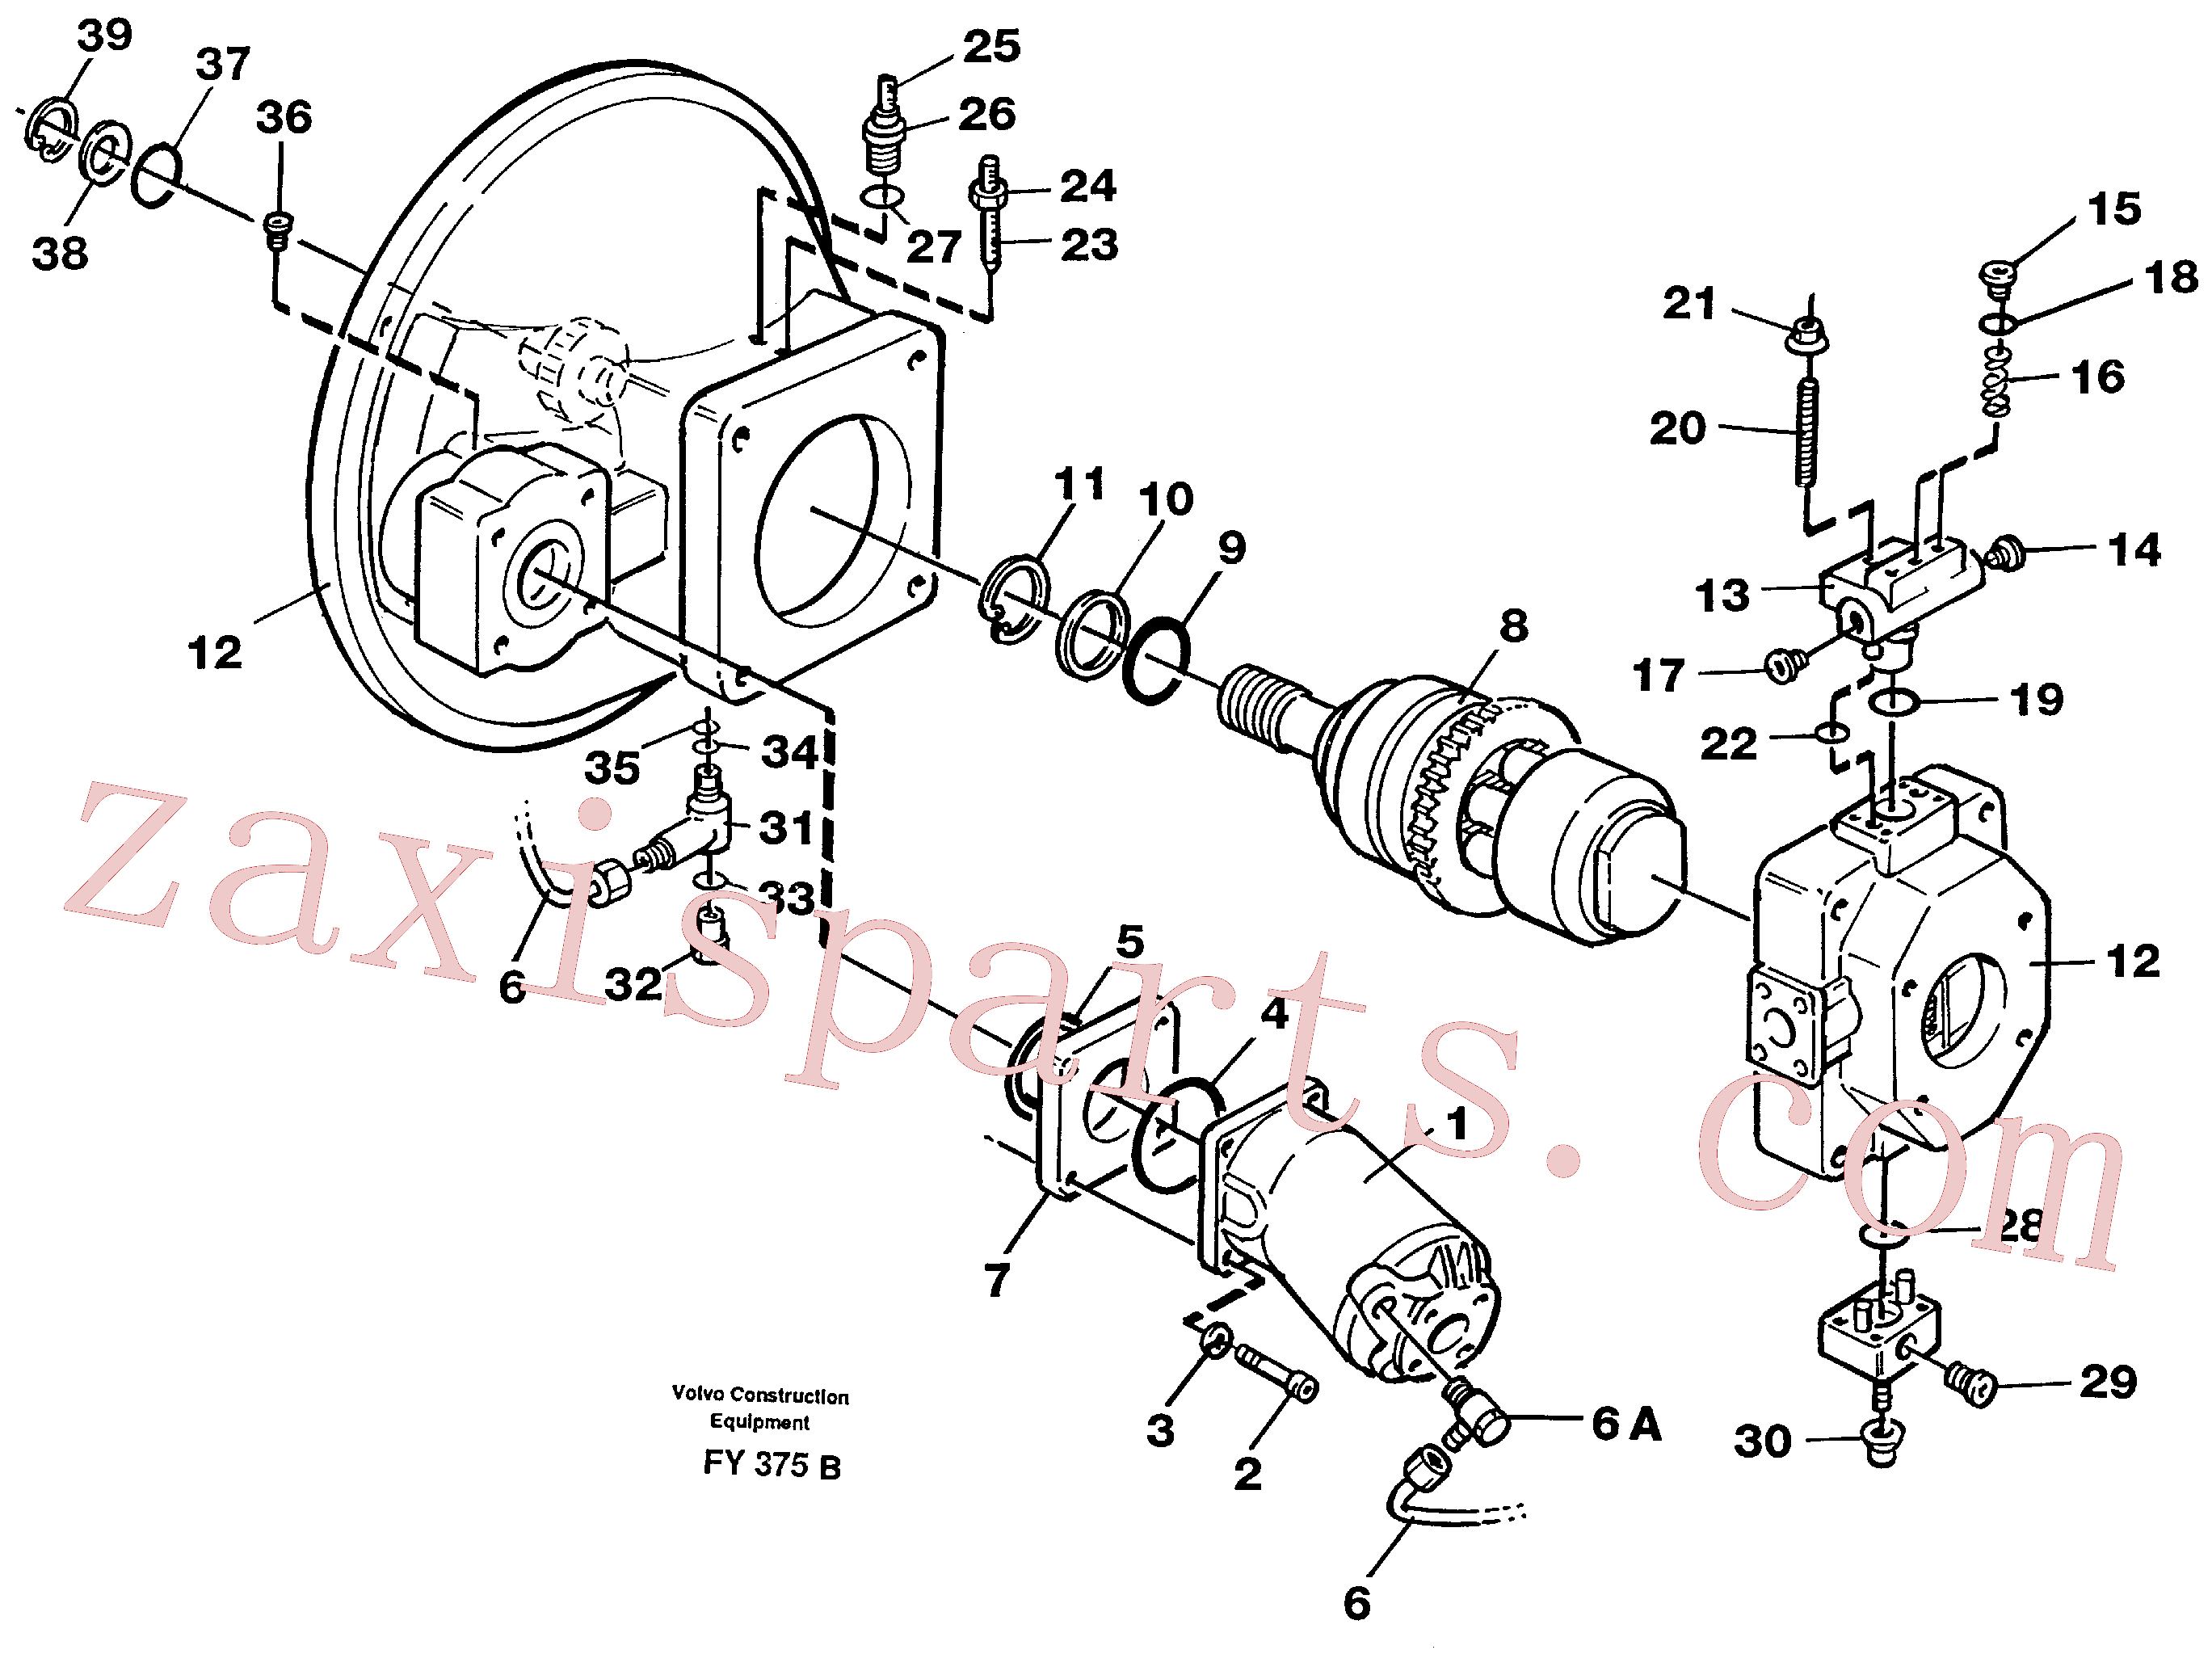 VOE11992750 for Volvo Pump gear box(FY375B assembly)